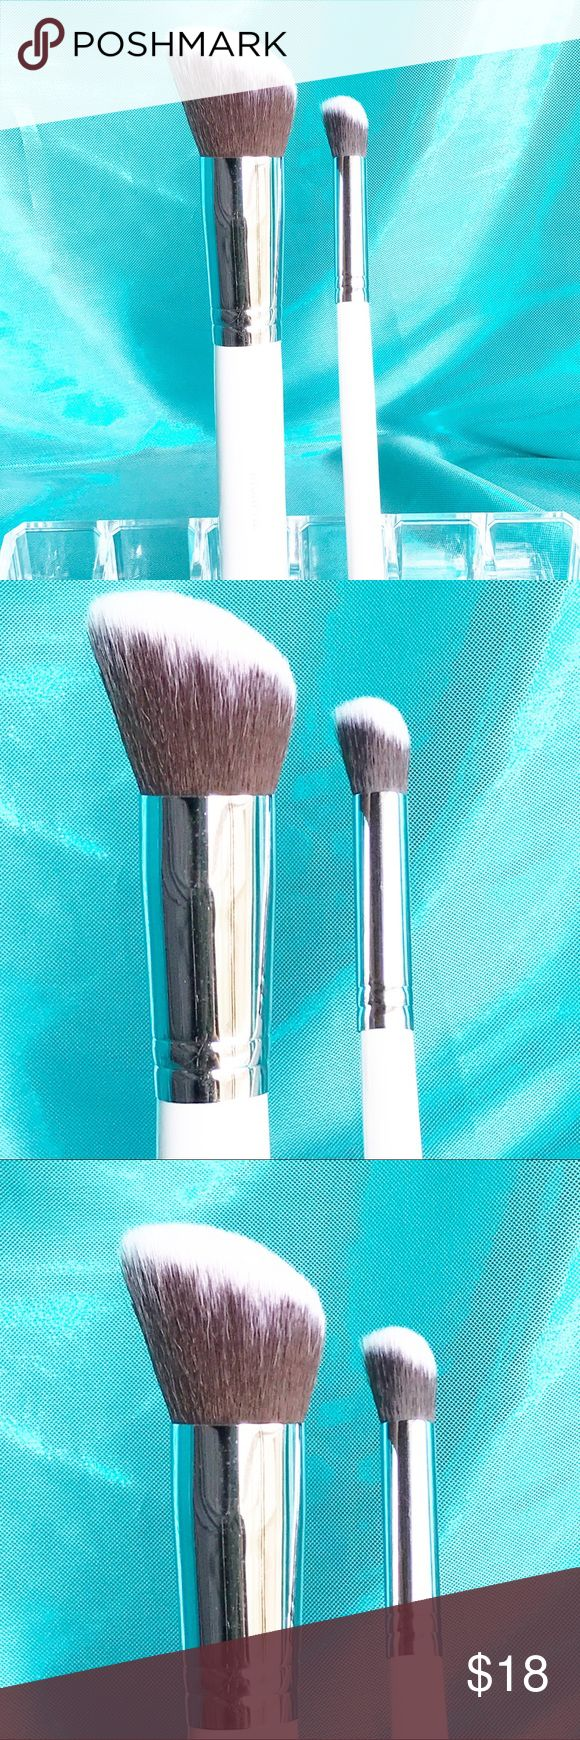 Morphe Angled Buffer Brush Set Morphe Contour Brush Set features super soft bristles and includes an angled buffer and a mini angled buffer. Bundle #99. Check out my other Morphe brushes to bundle and save! Morphe Makeup Brushes & Tools